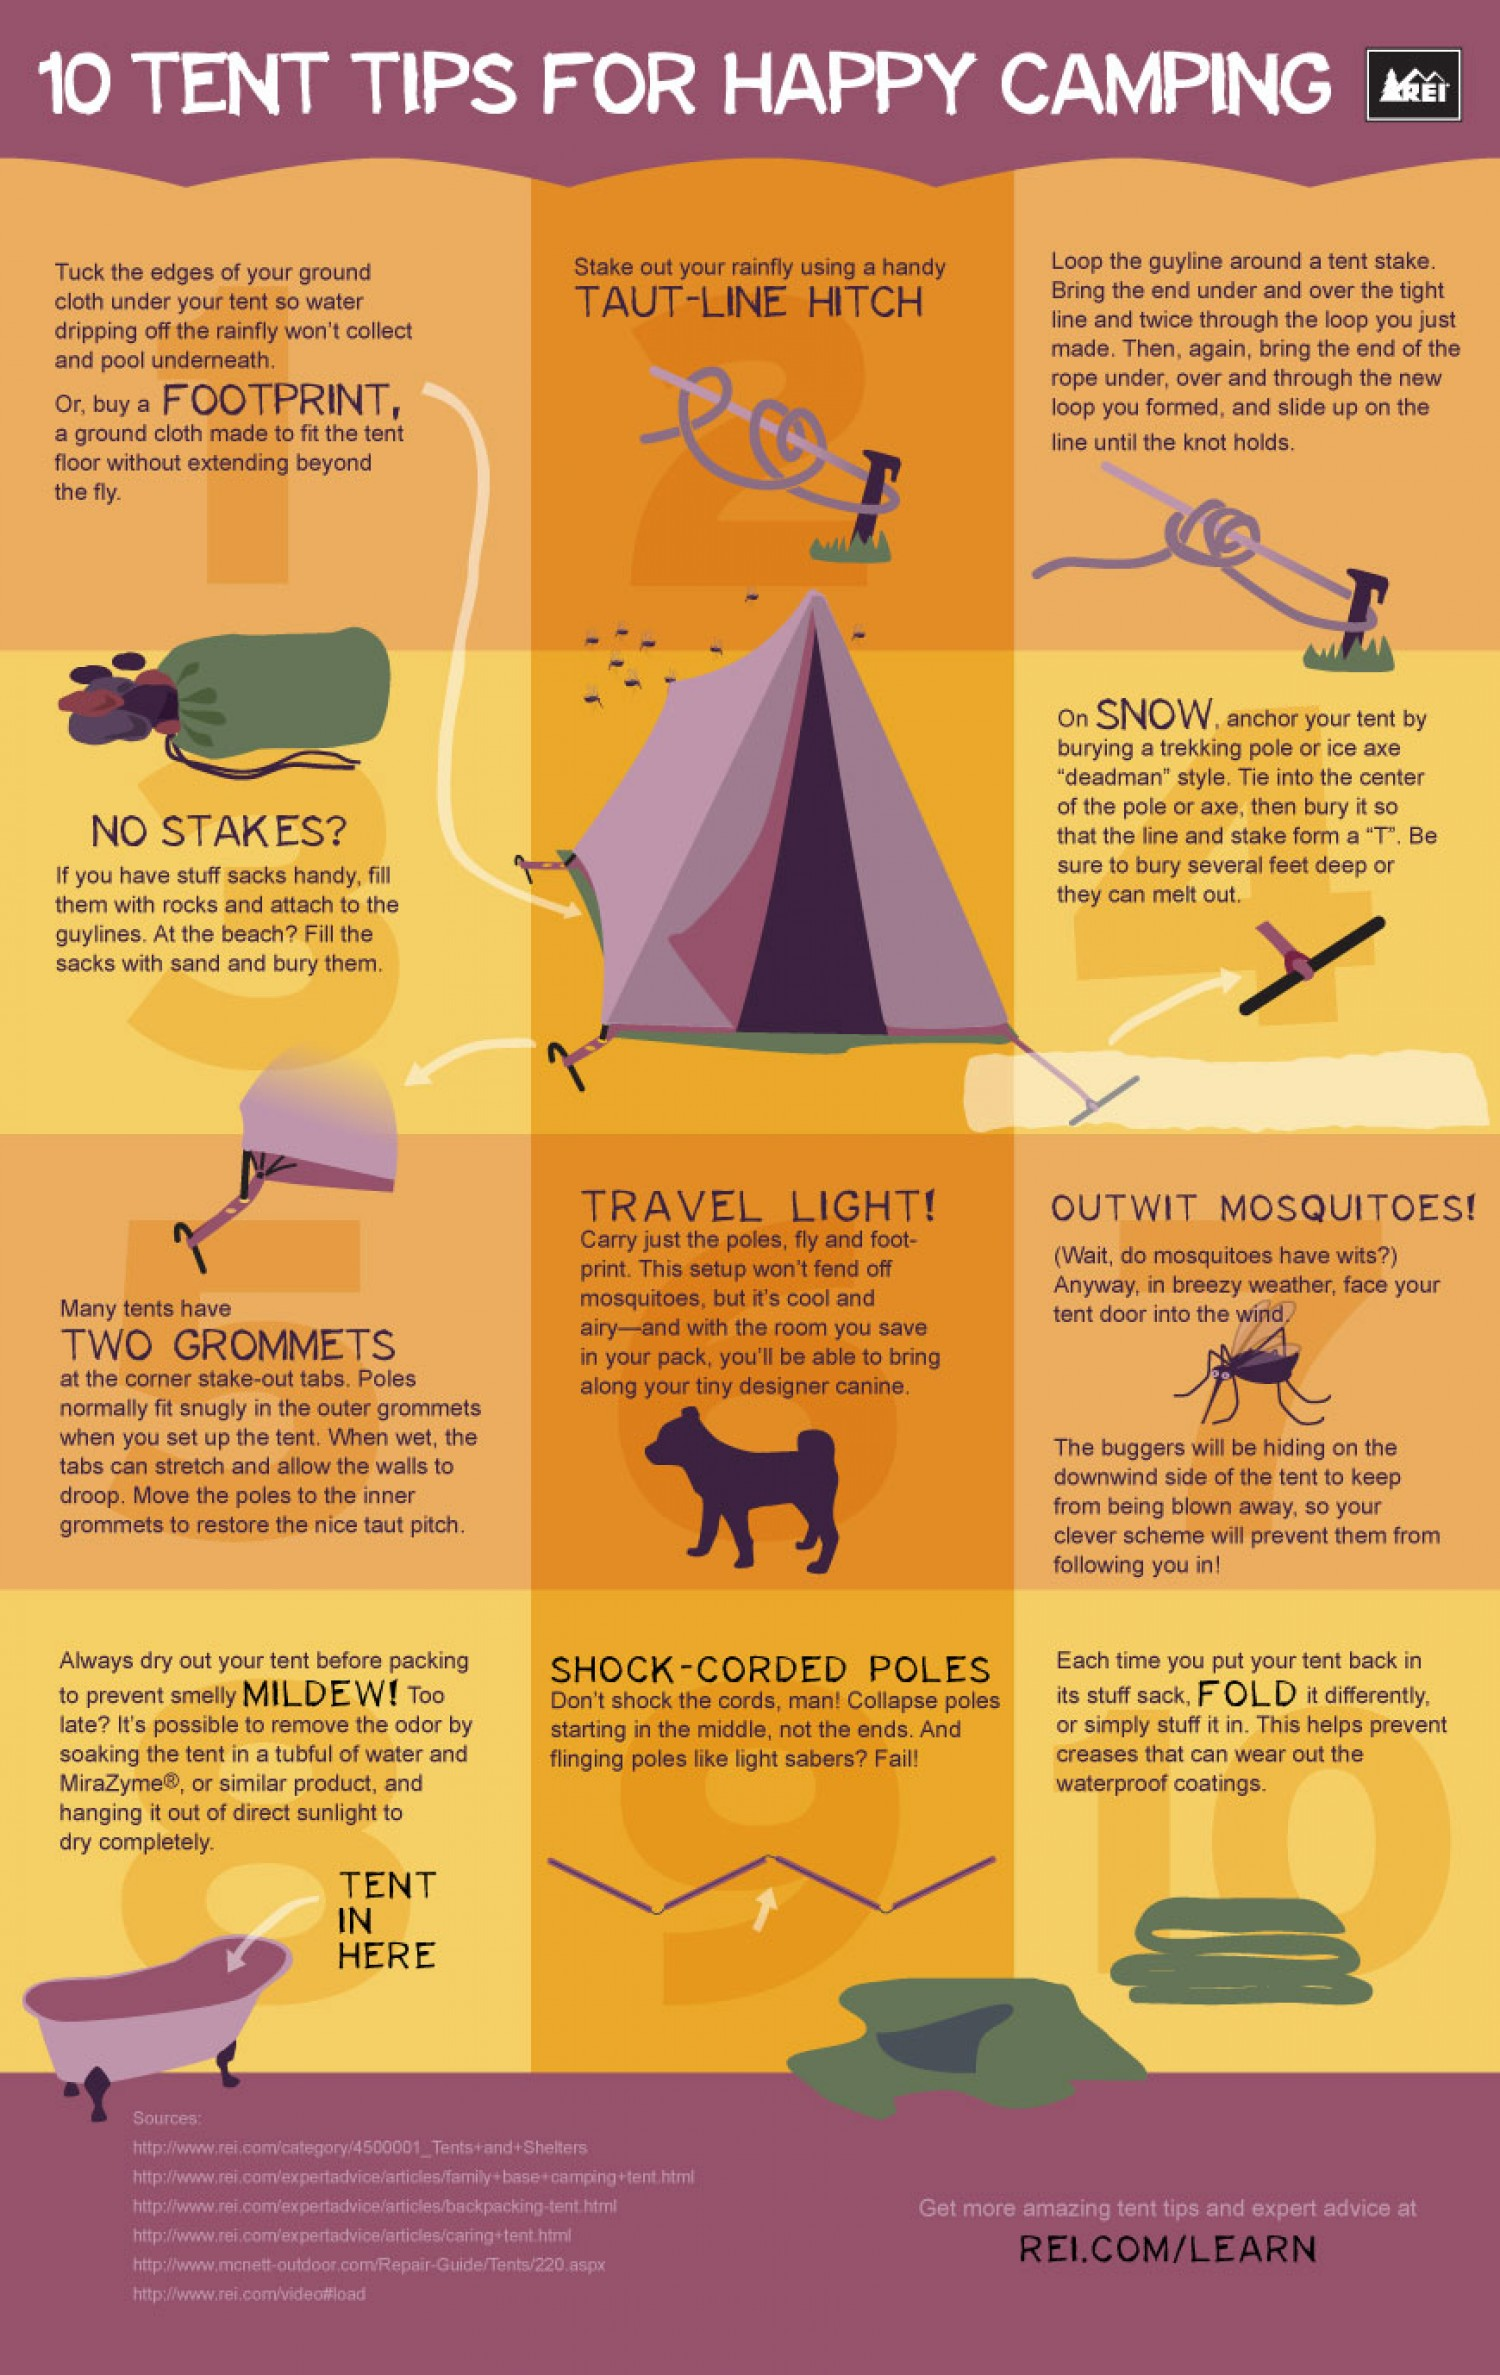 10 Tent Tips For Happy Campin